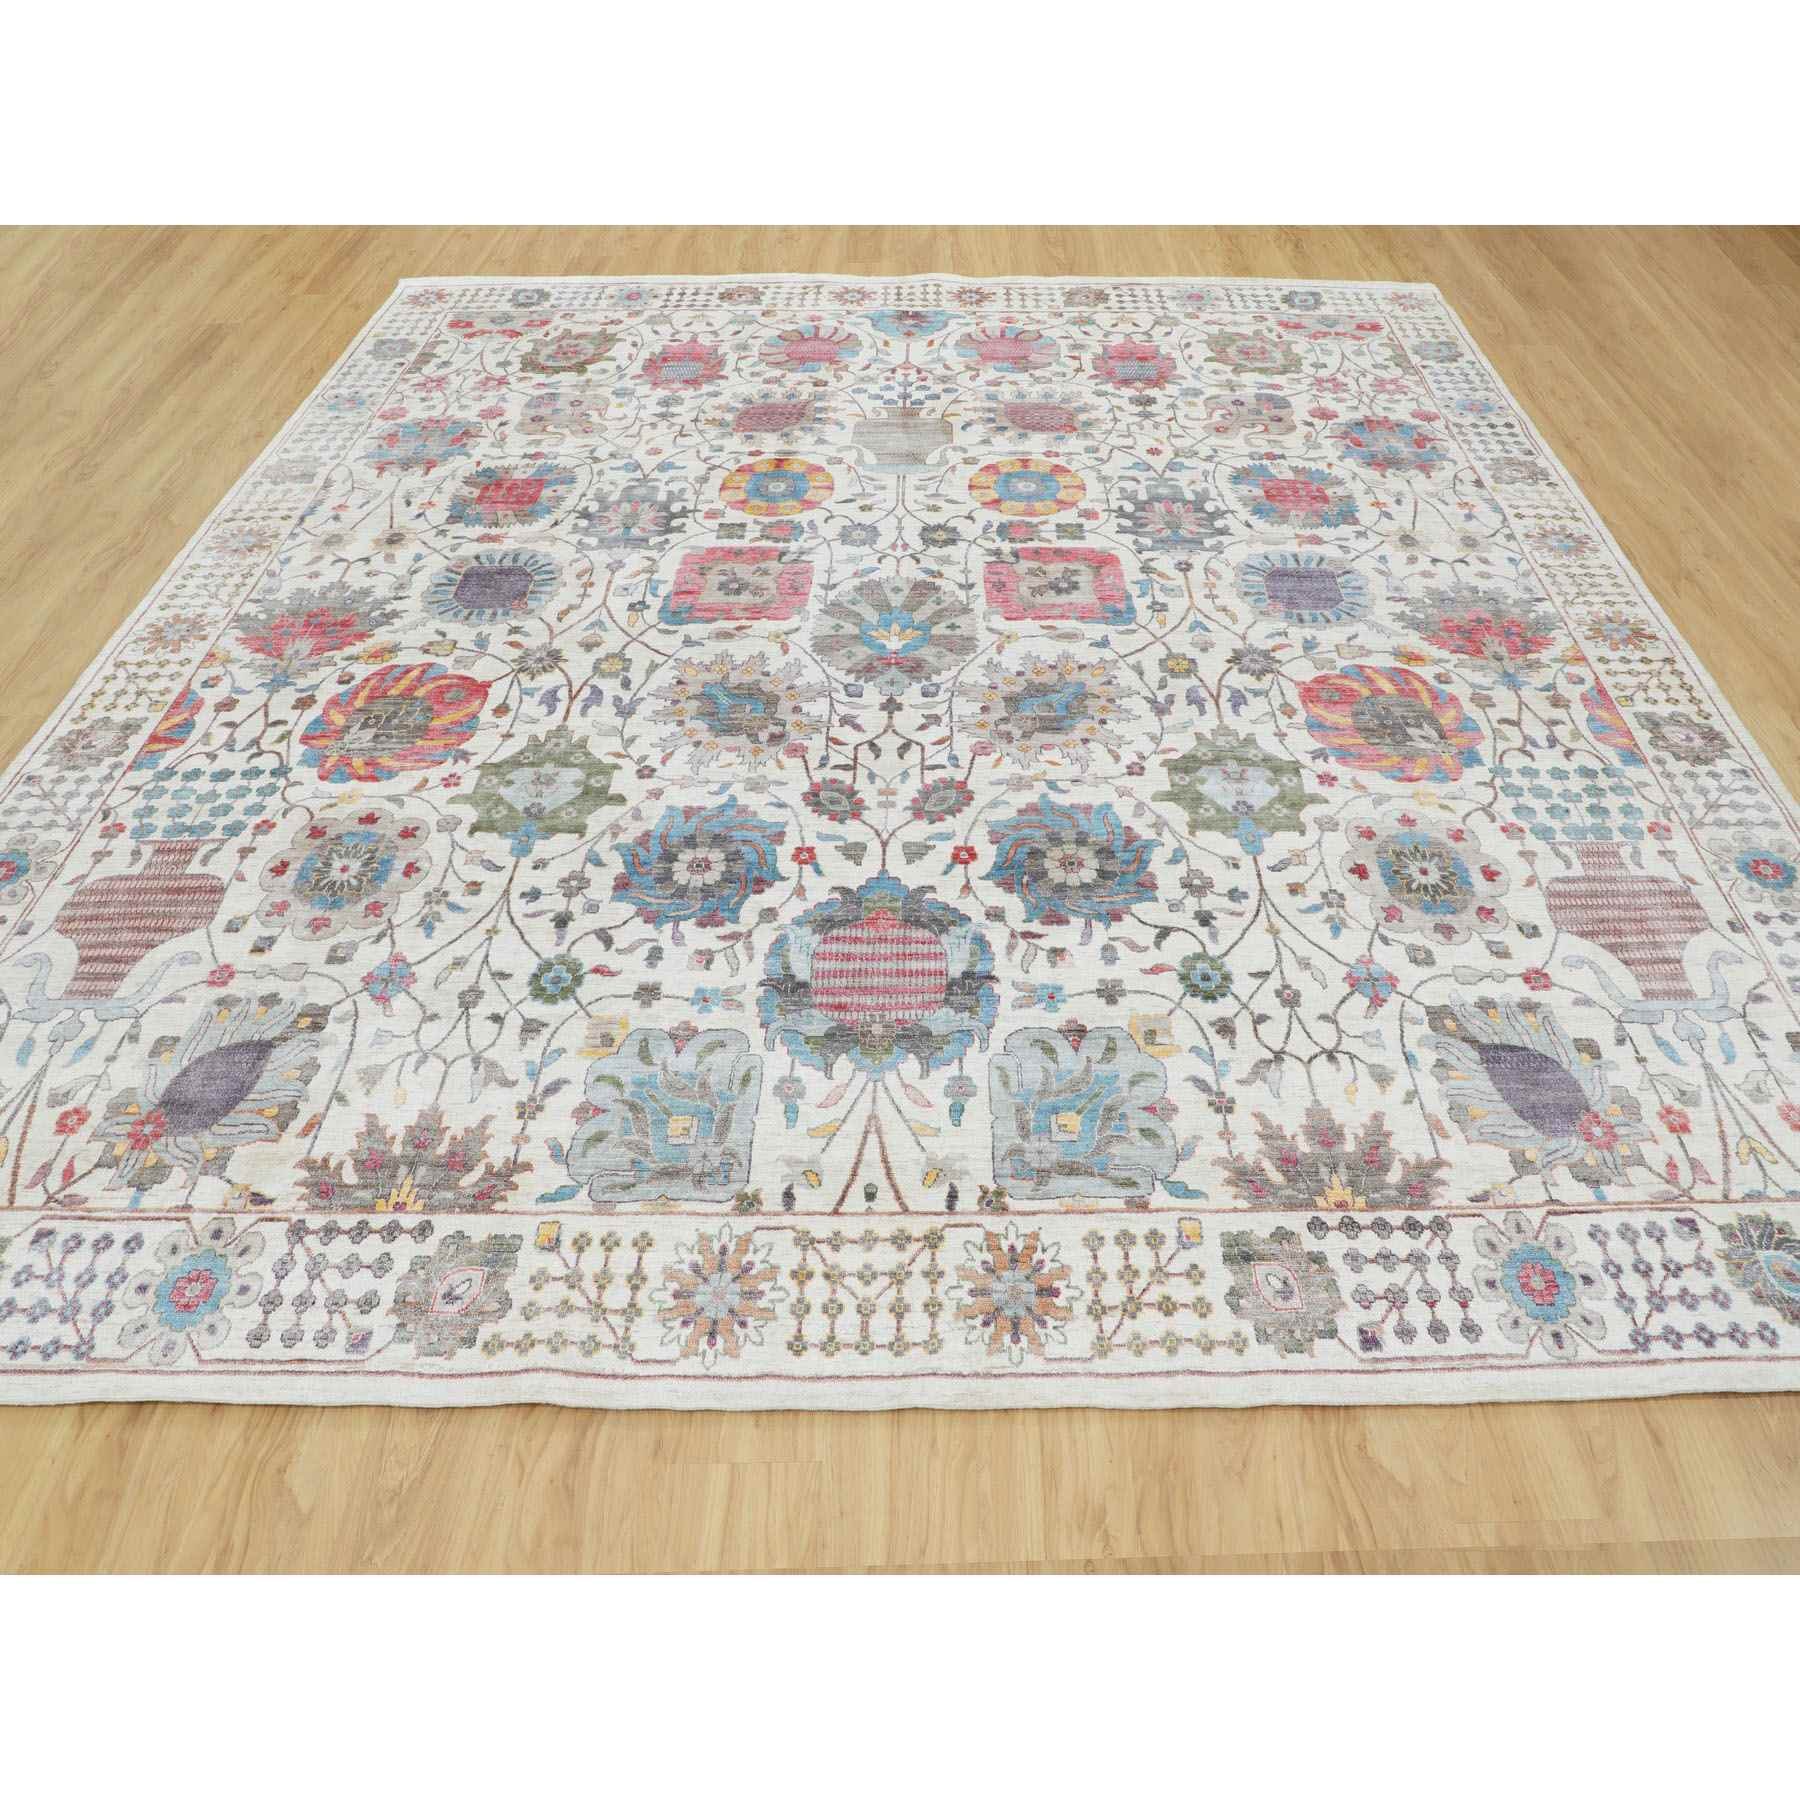 Transitional-Hand-Knotted-Rug-290670